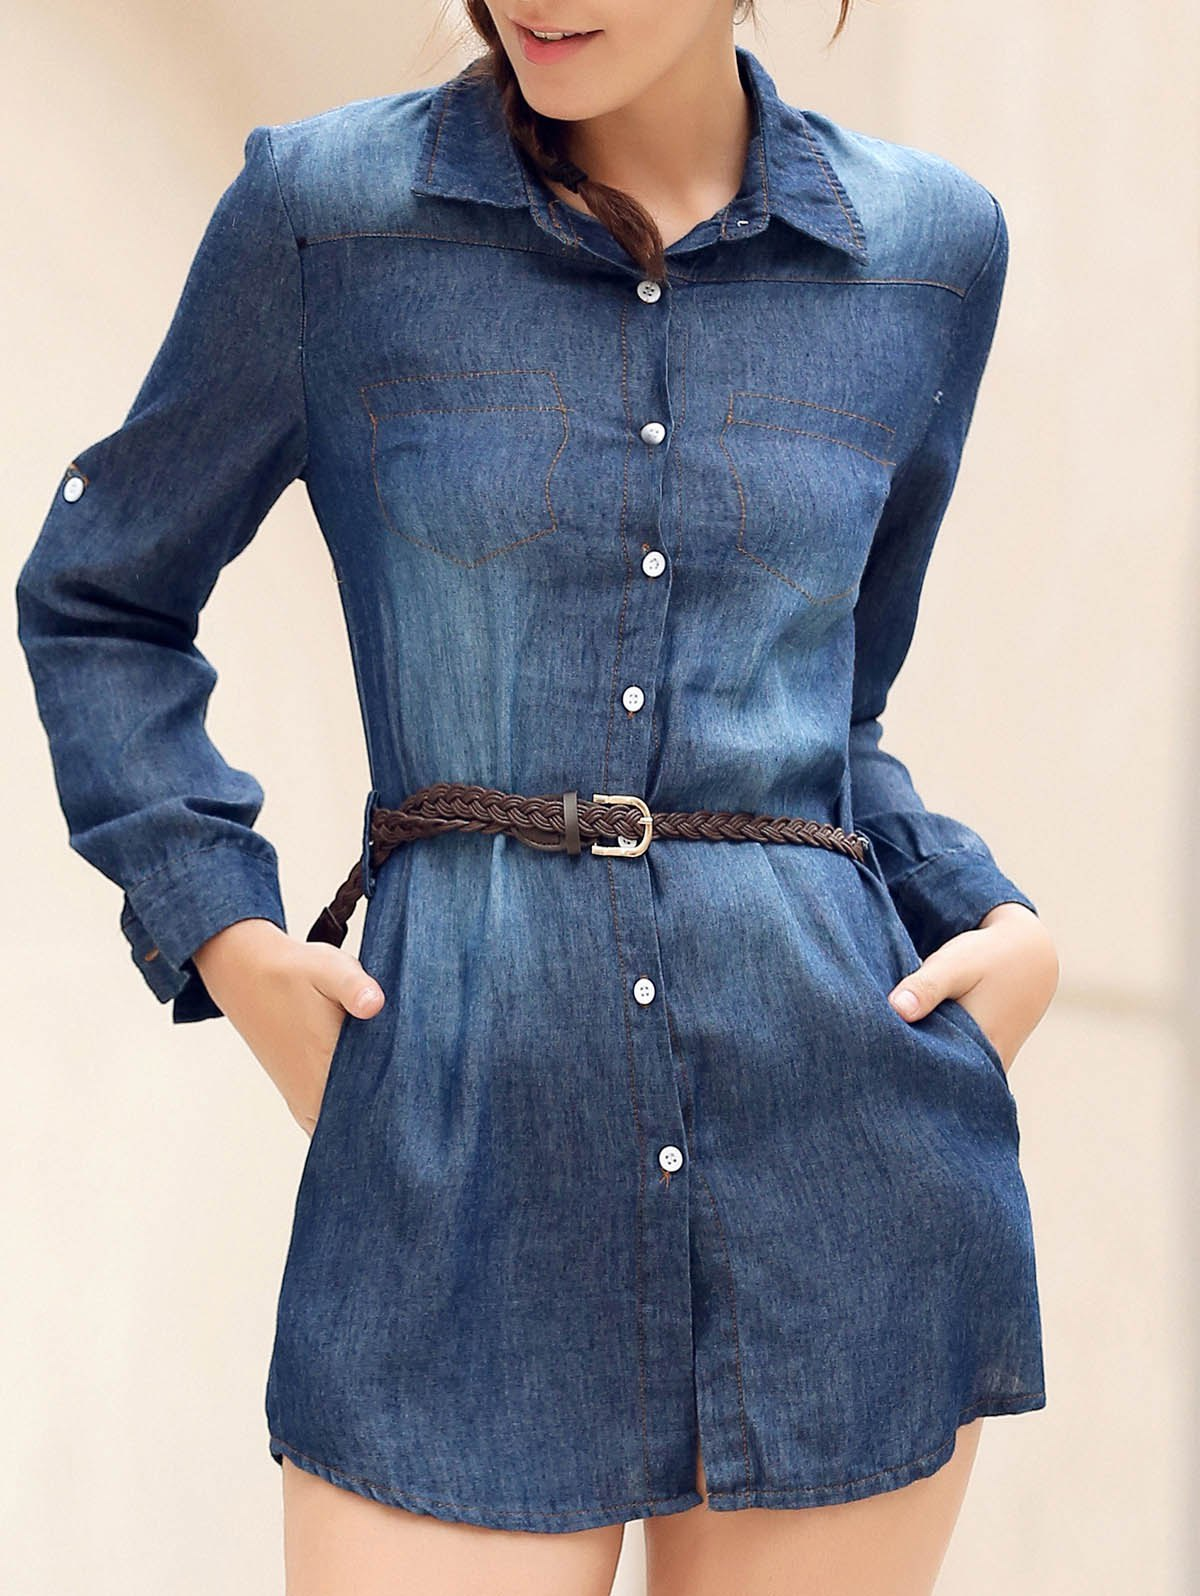 Mini Button Up Denim Shirt Dress with Pockets - BLUE S